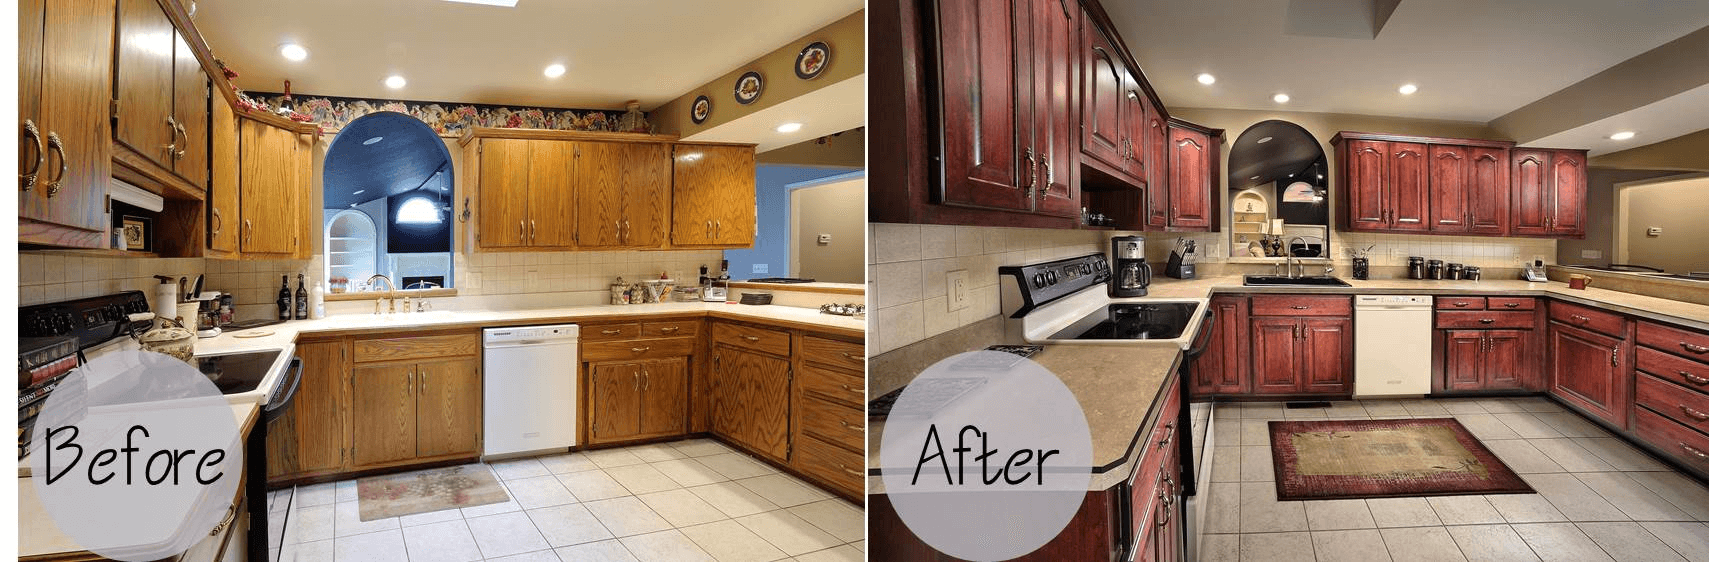 Kitchen Cabinet Refacing Reviews cabinets refacing before and after and the cost